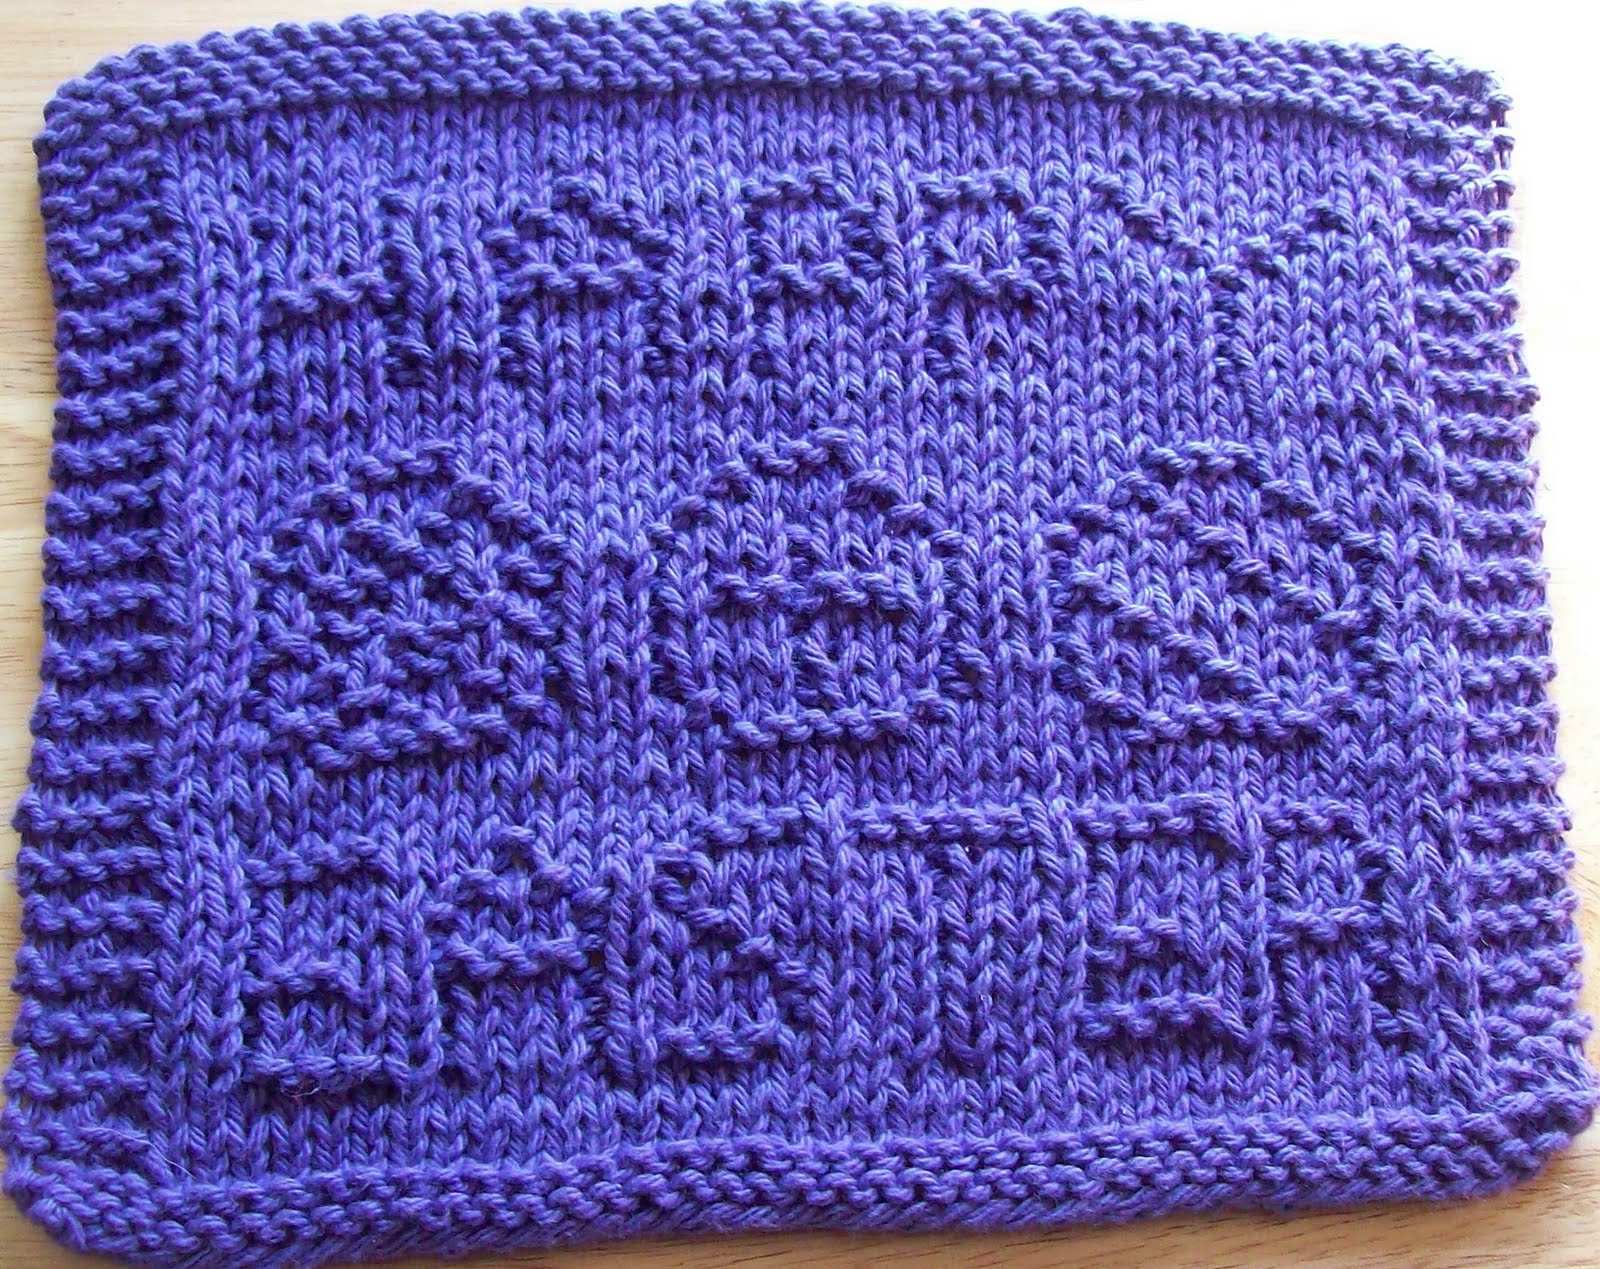 Knitted Dishcloth Patterns For Easter : DigKnitty Designs: Happy Easter Knit Dishcloth Pattern